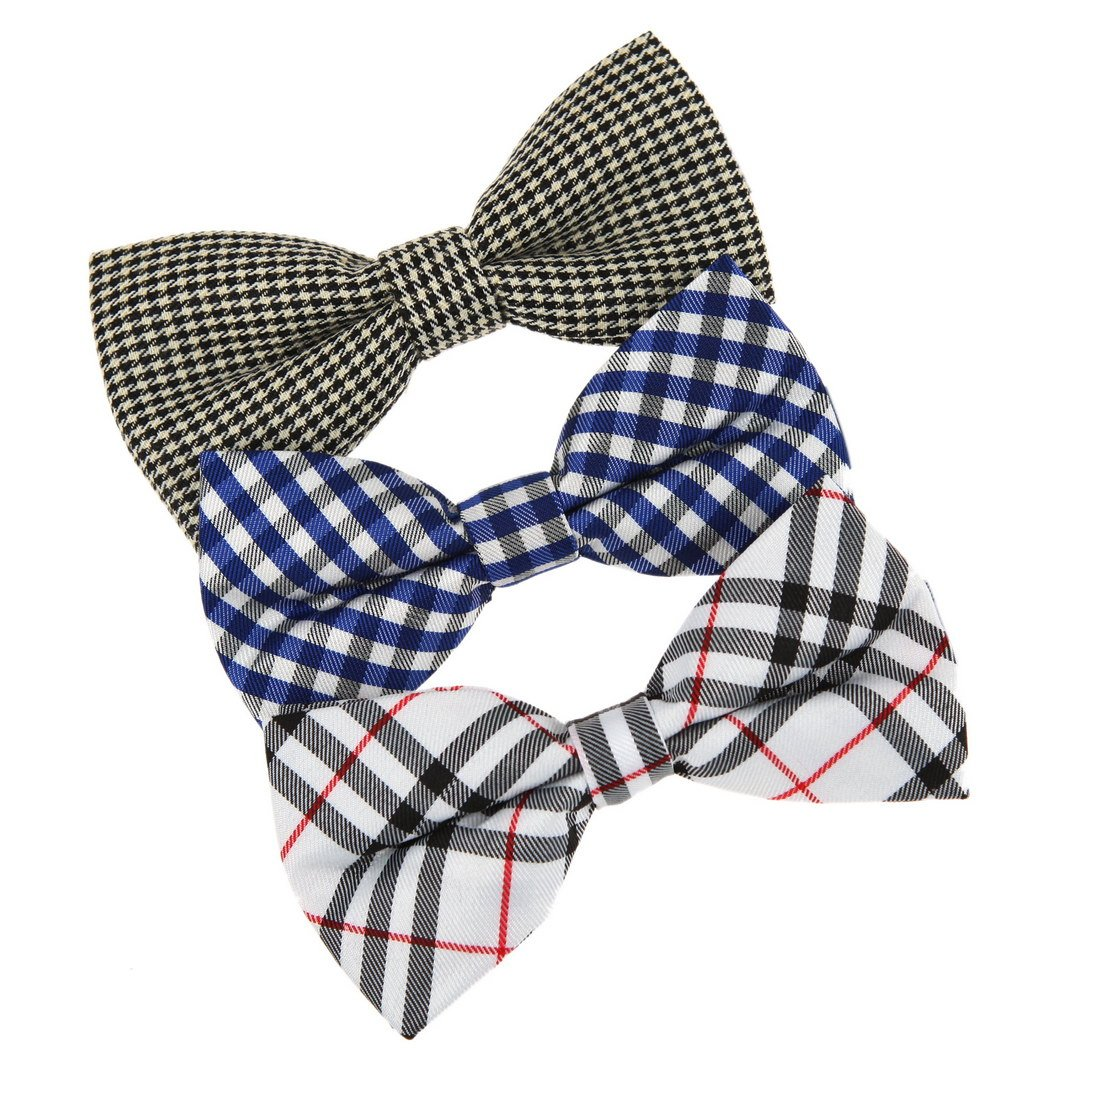 DBE0106 Collection Pre-Tied Bow Tie for Fashion 3 Pack Set Dan Smith